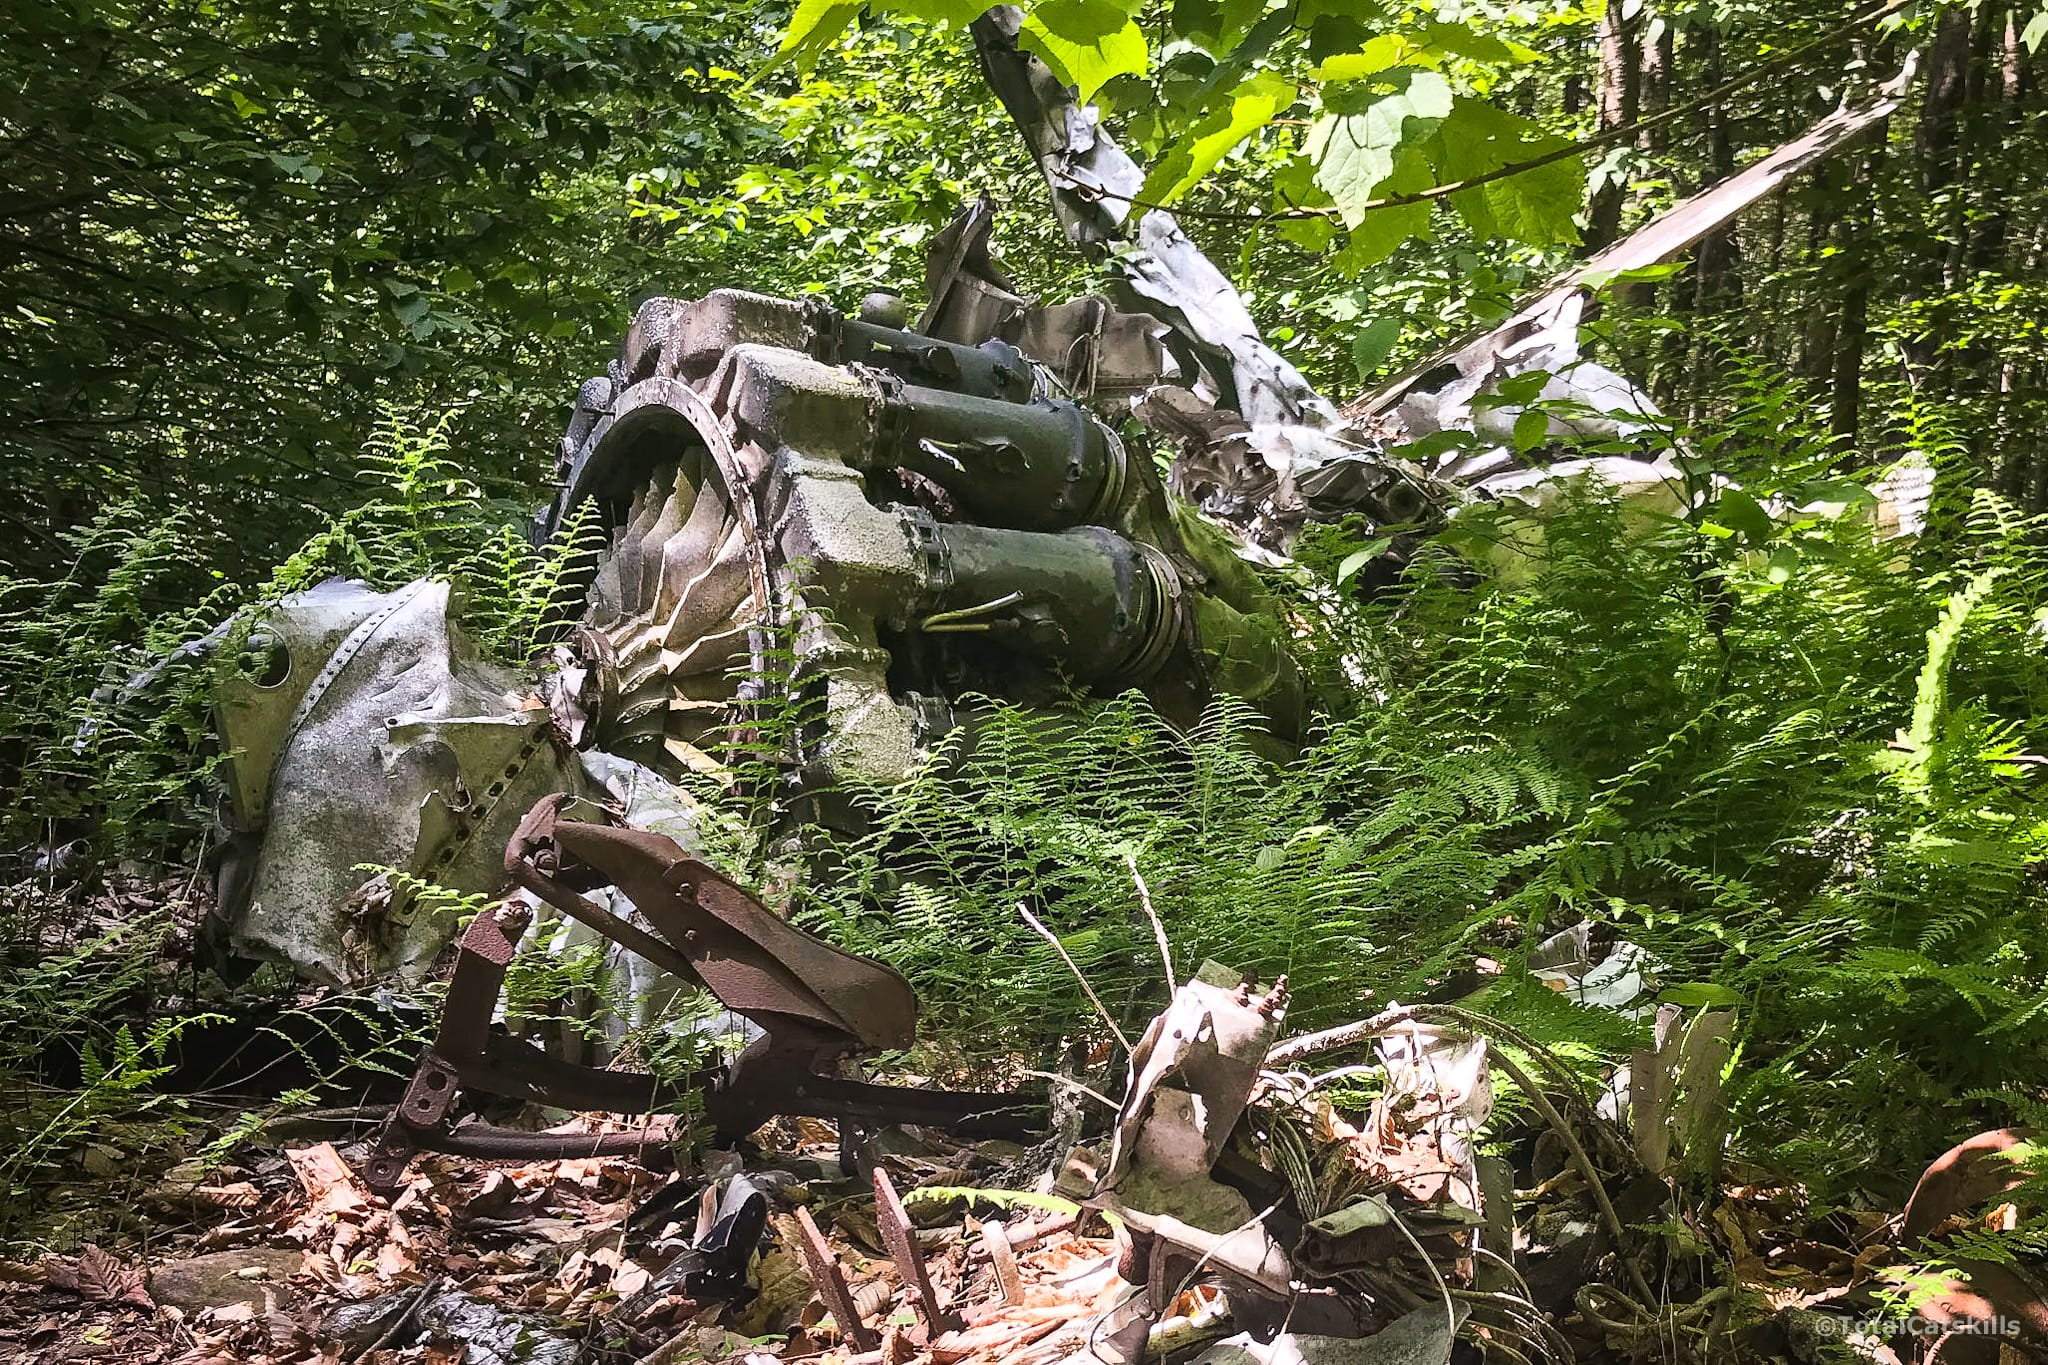 jet engine wrecked in forest